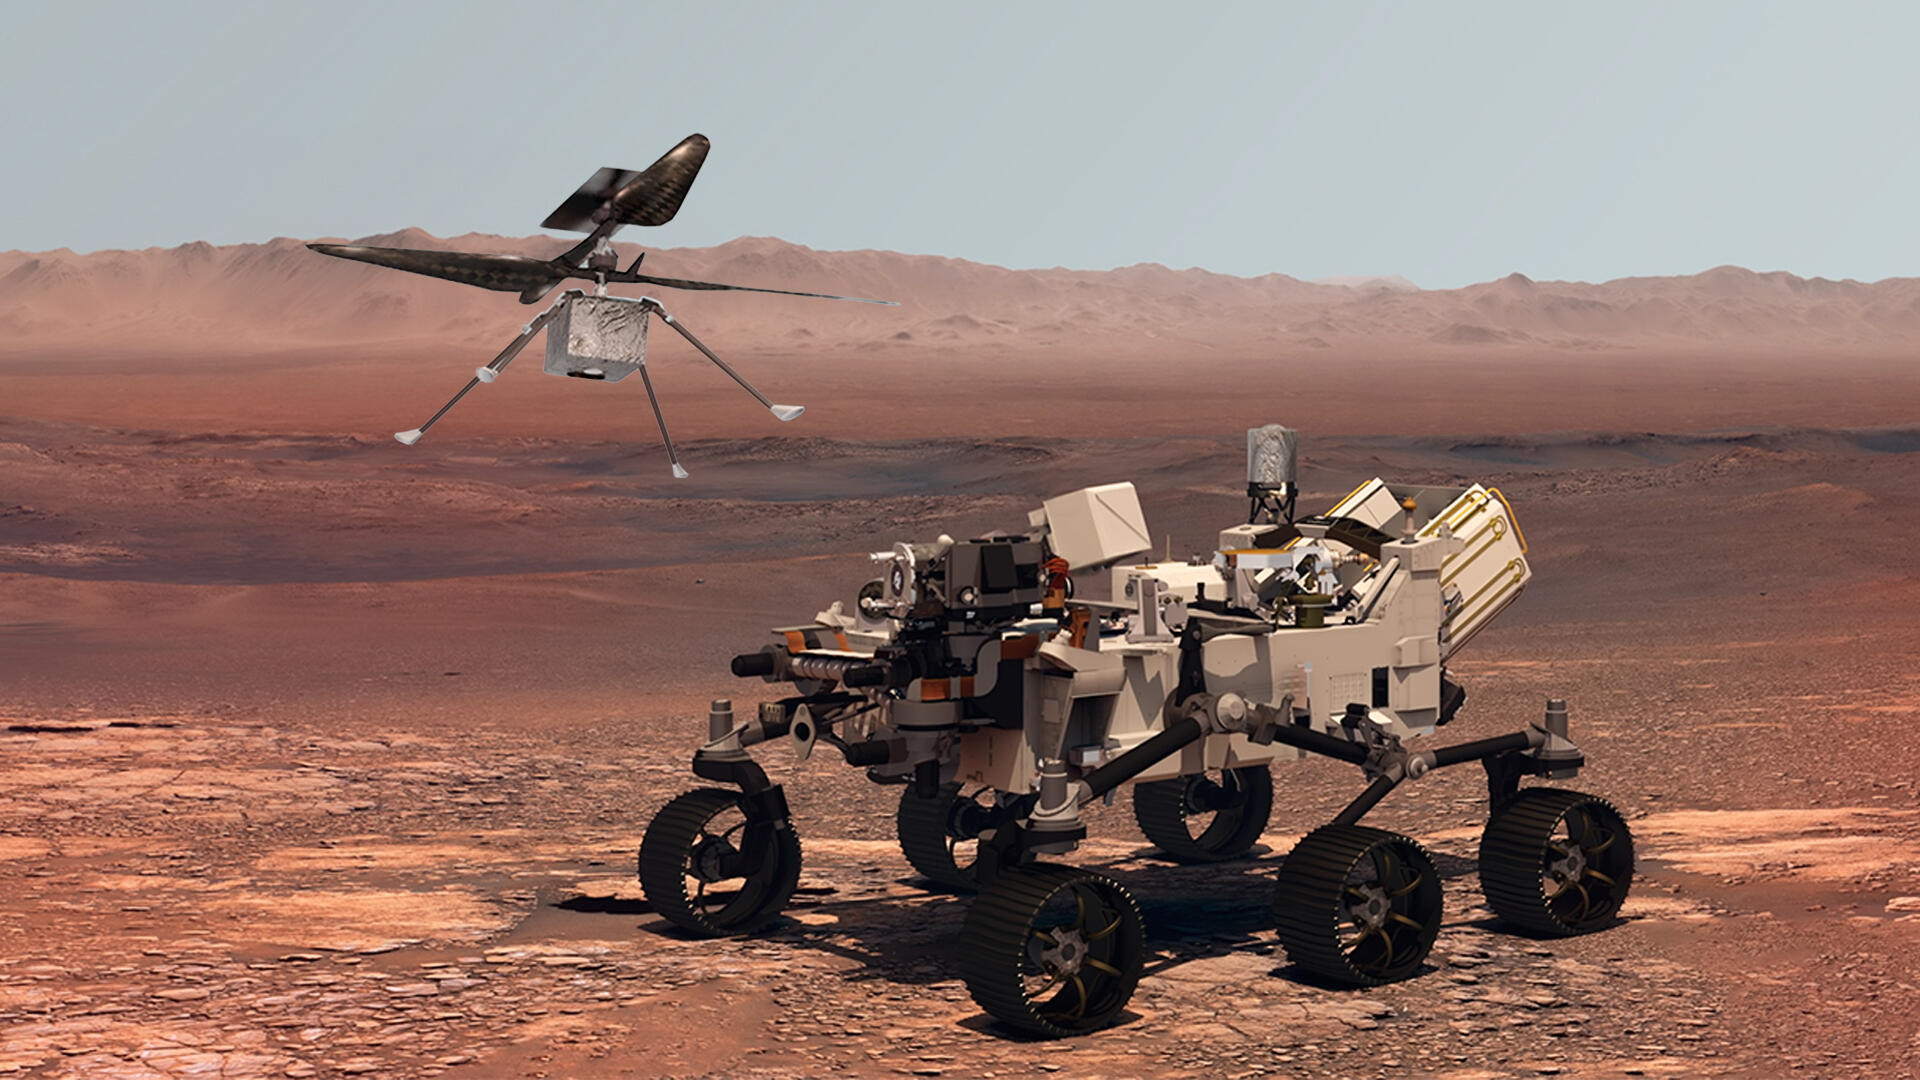 Video: A year in the life of NASA's Mars Perseverance rover